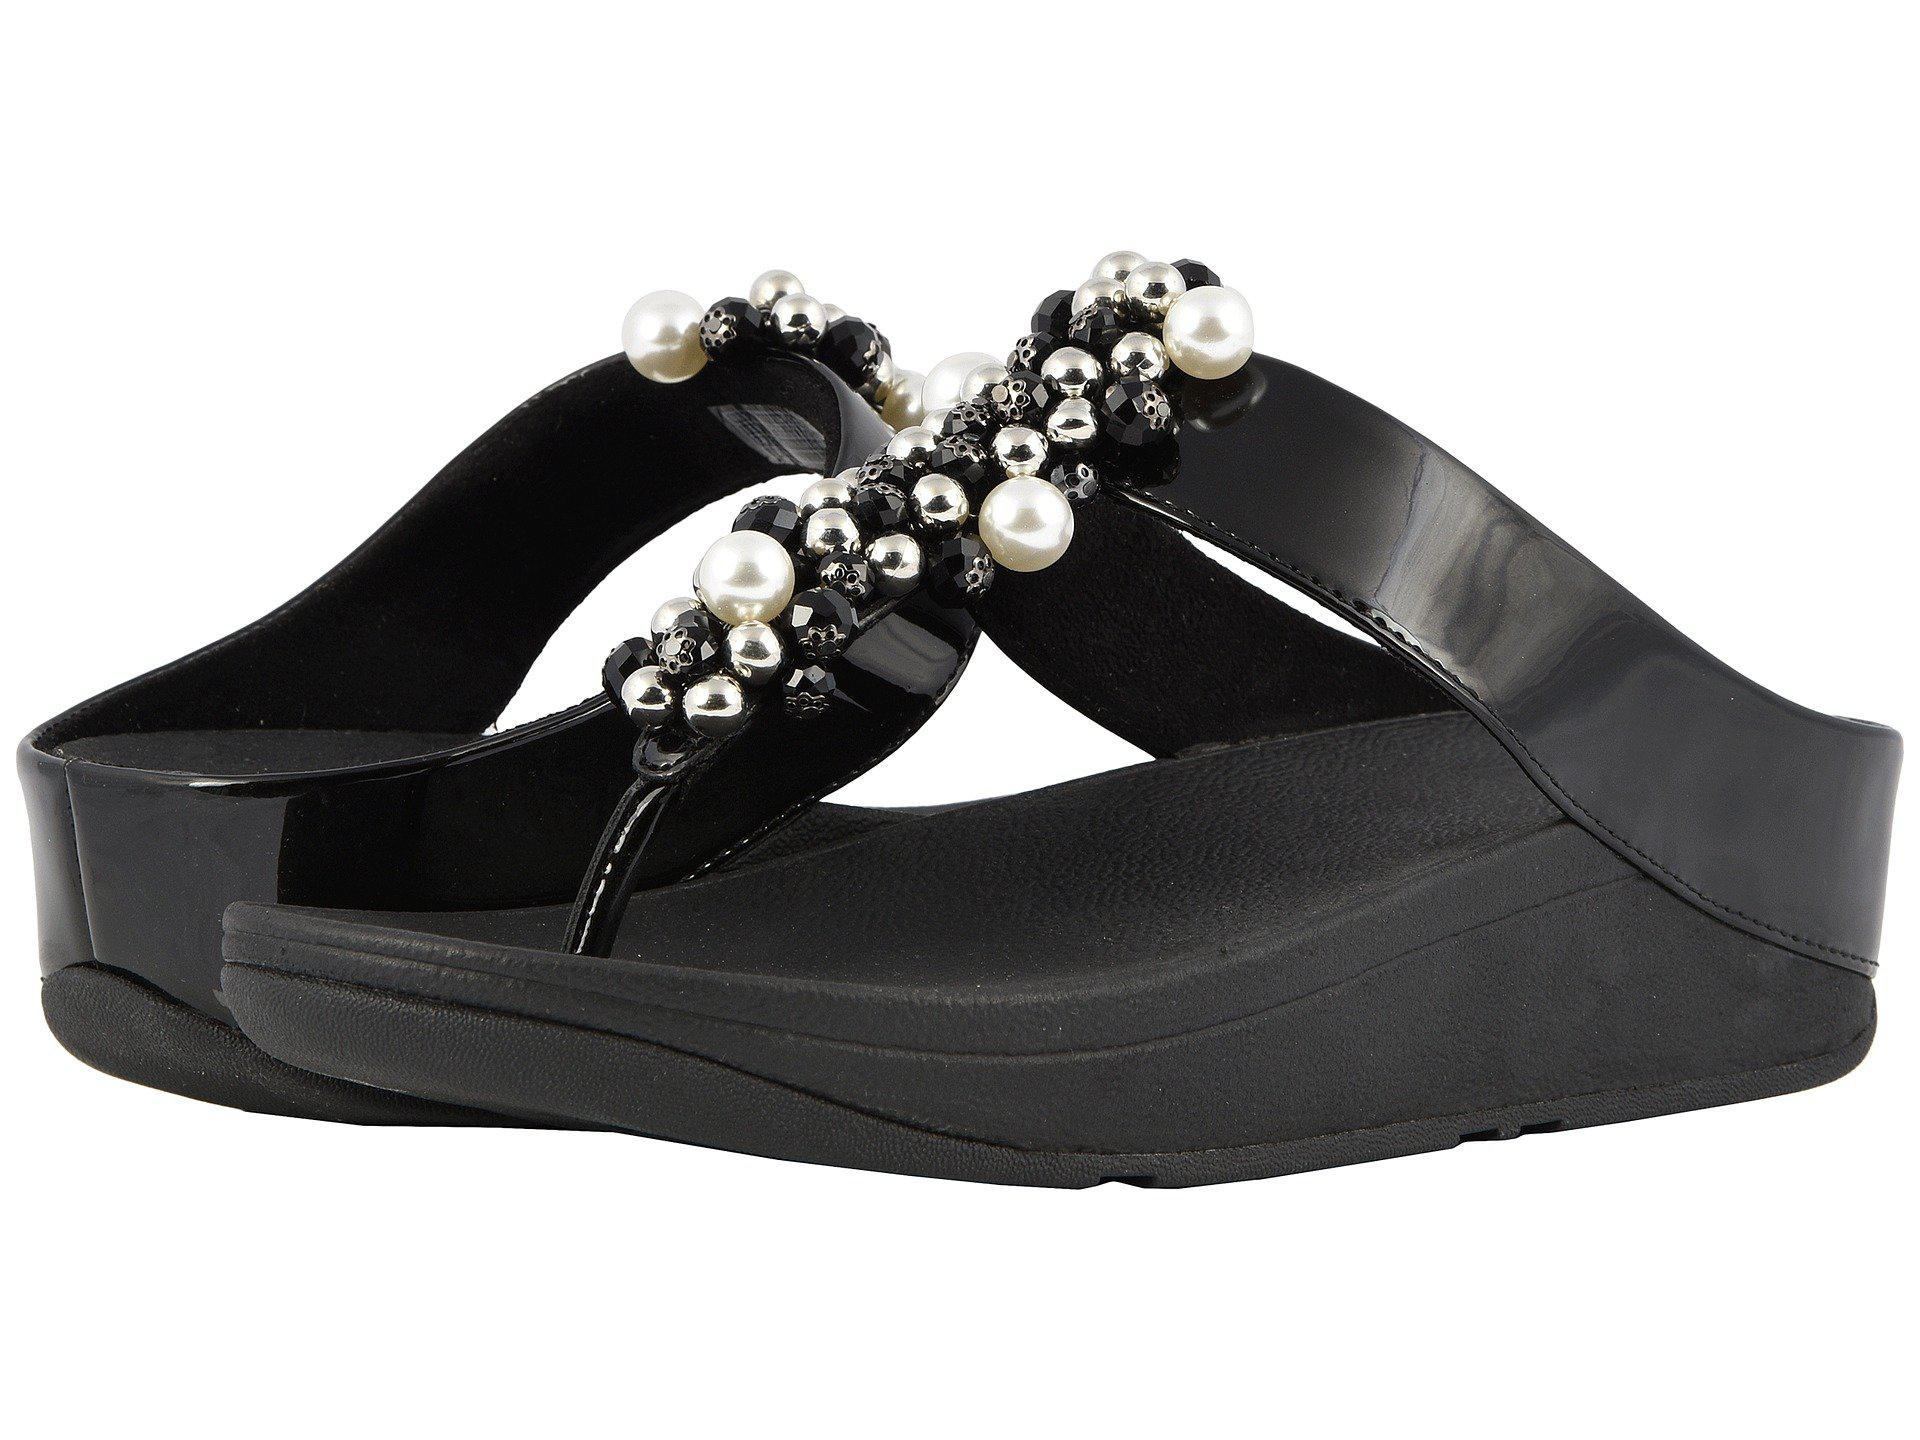 8ddb013649b8d4 Lyst - Fitflop Deco Toe Thong Sandals (black) Women s Shoes in Black